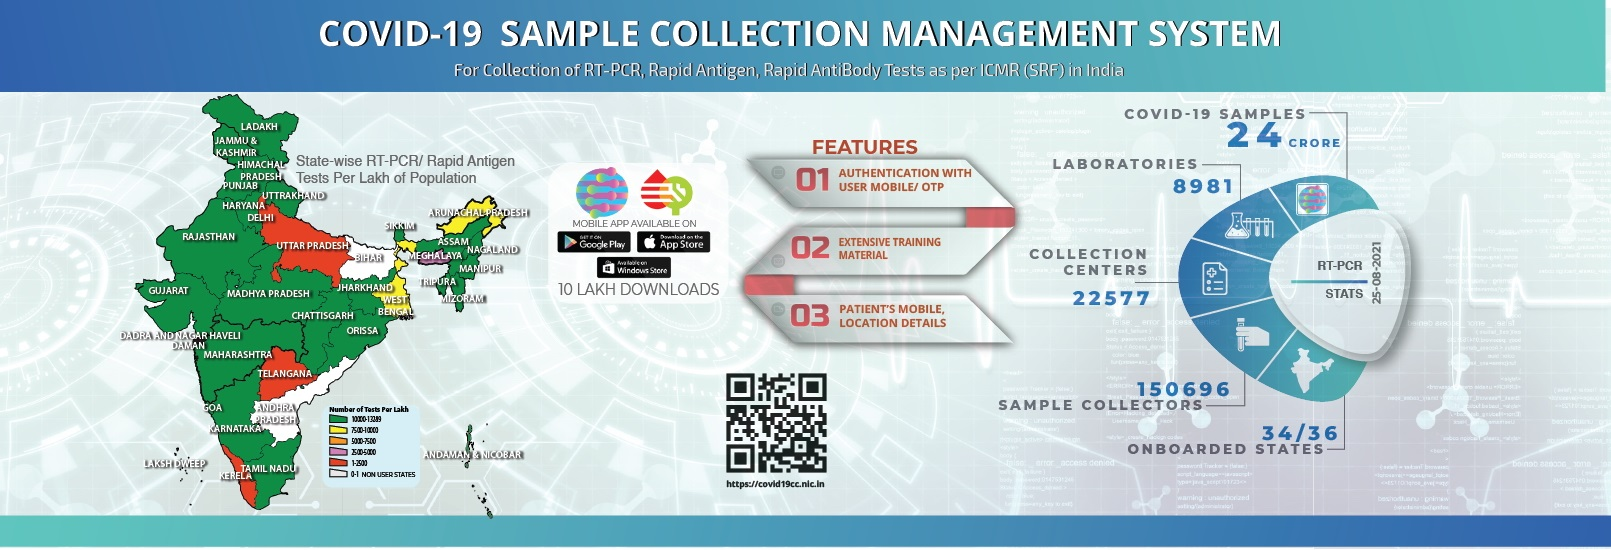 Image of COVID-19 SAMPLE COLLECTION MANAGEMENT SYSTEM